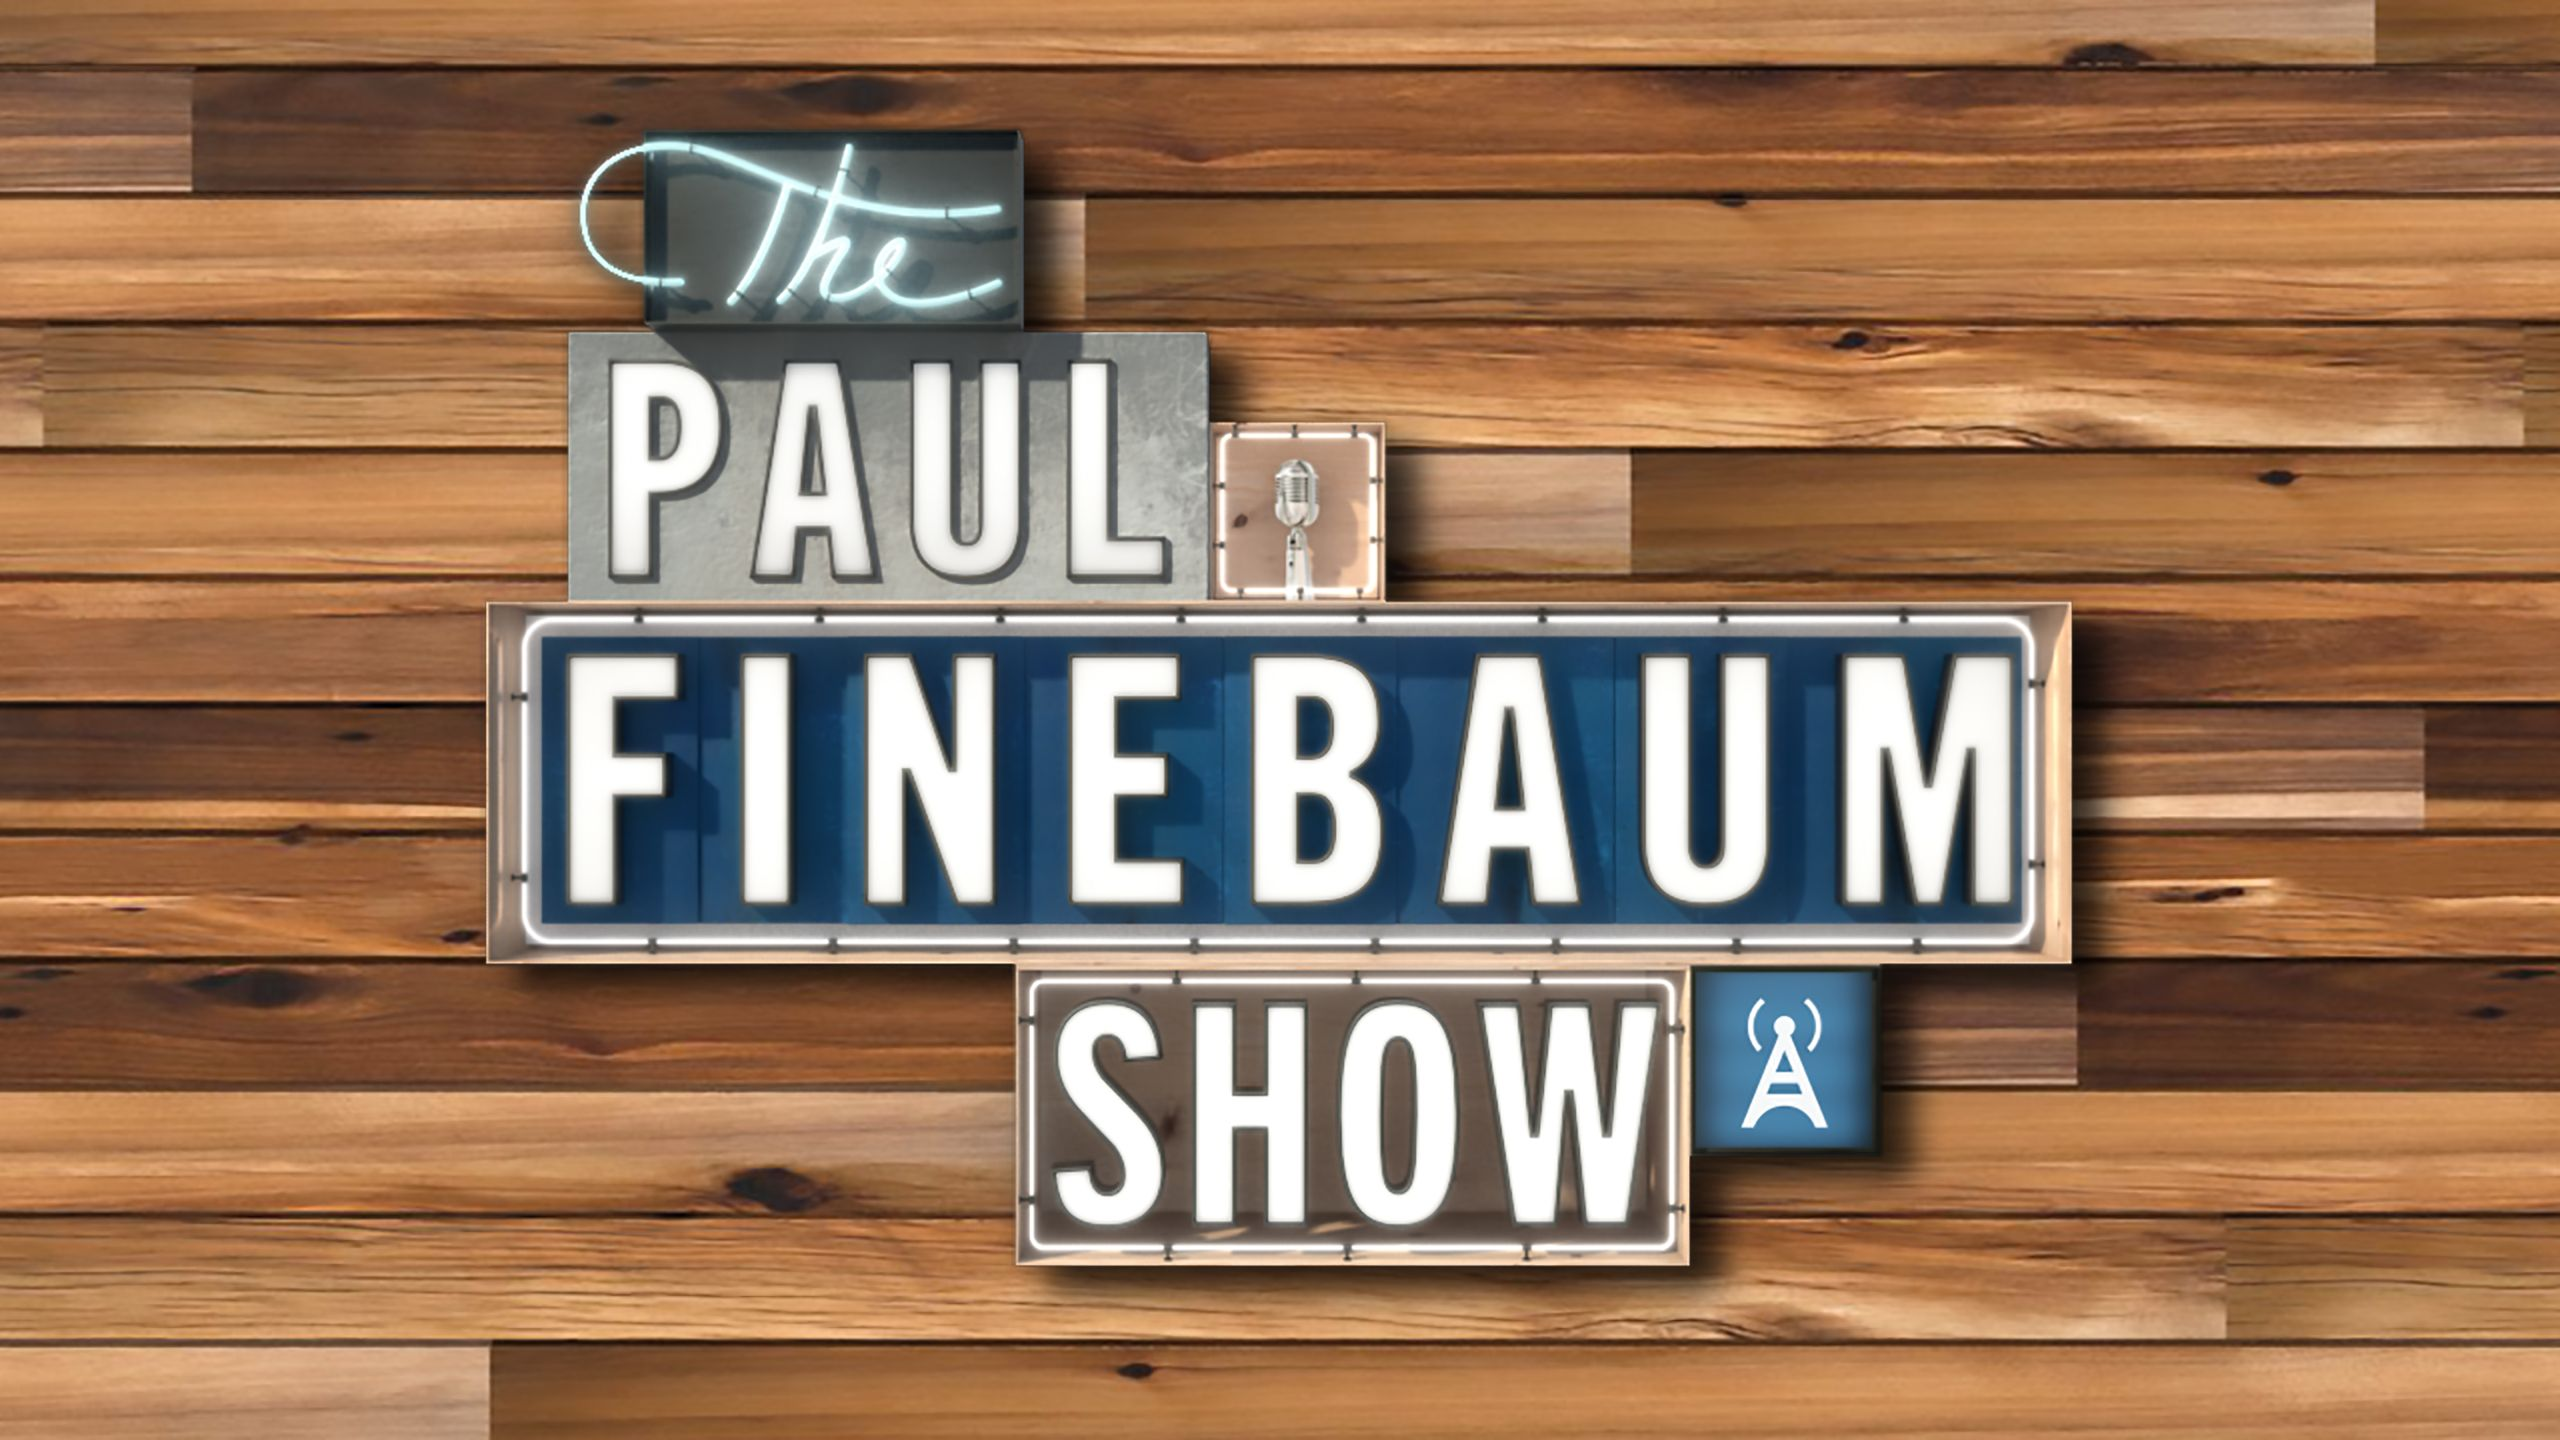 Mon, 5/21 - The Paul Finebaum Show